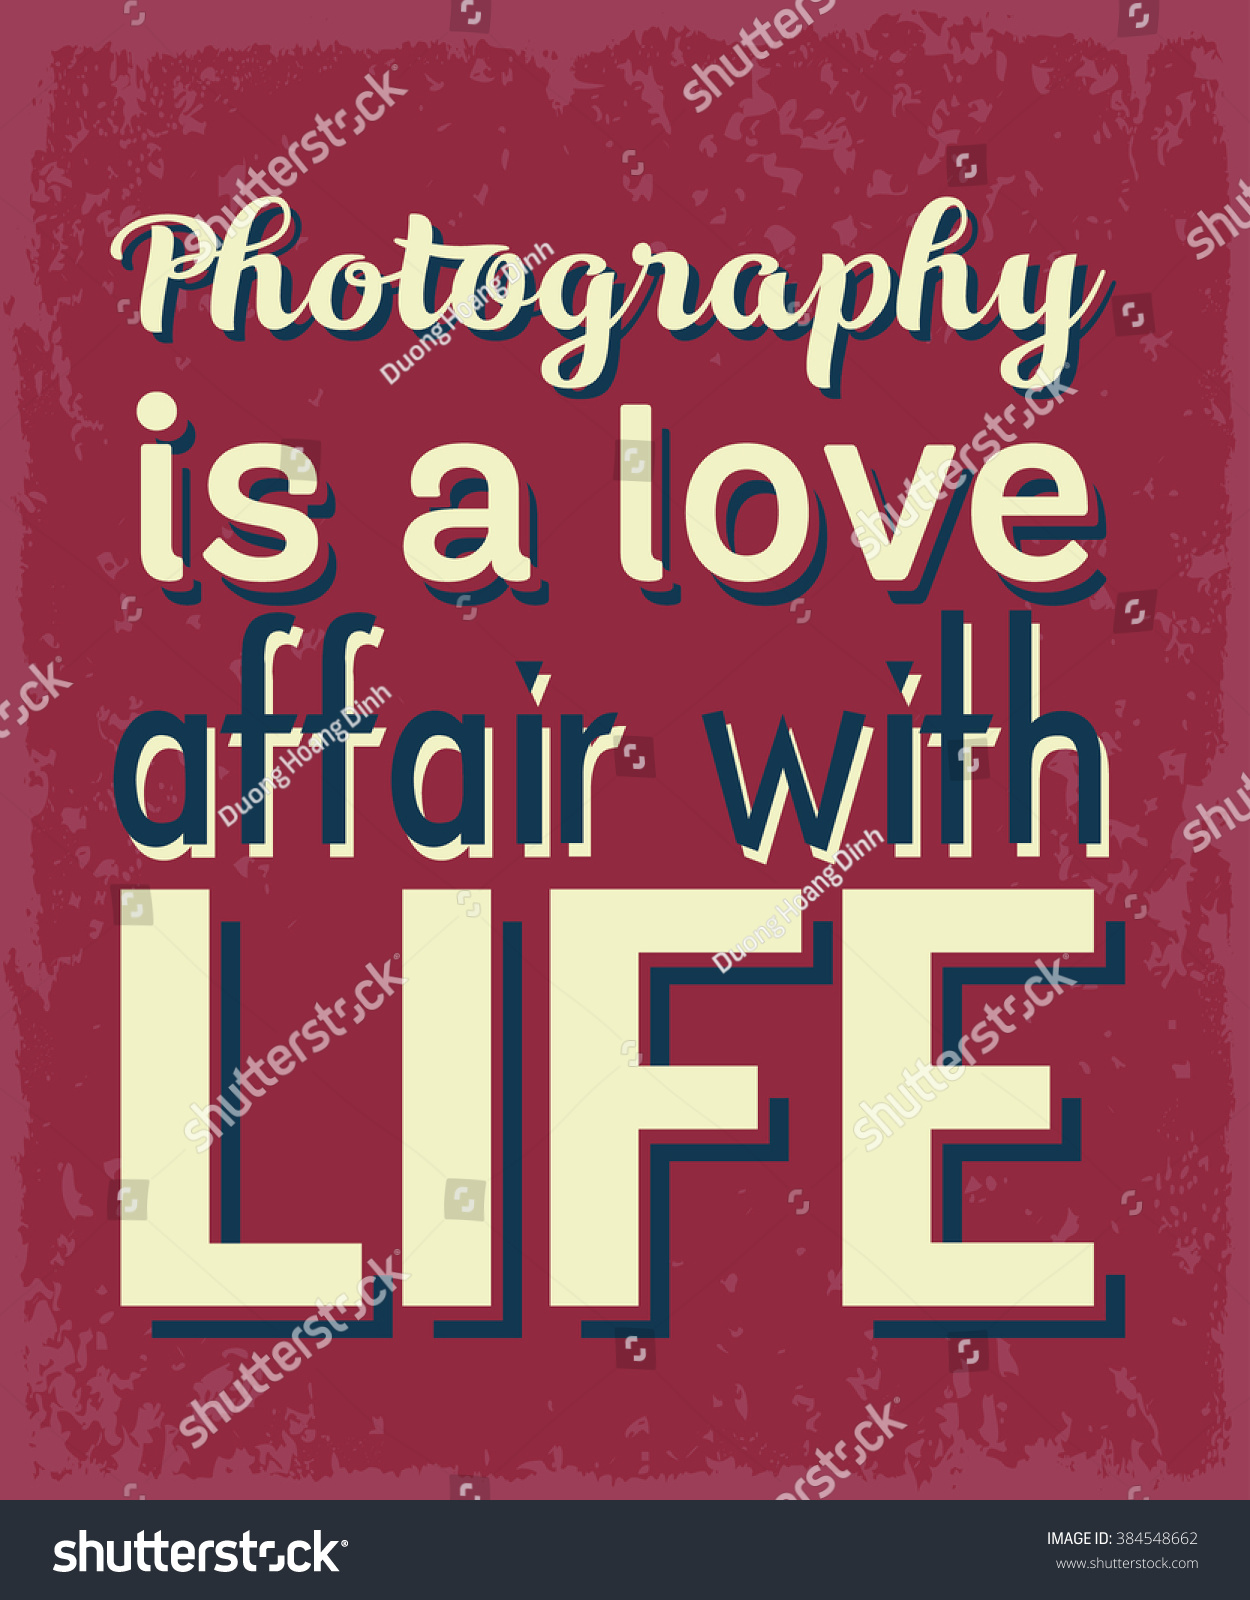 Photography with life quotes